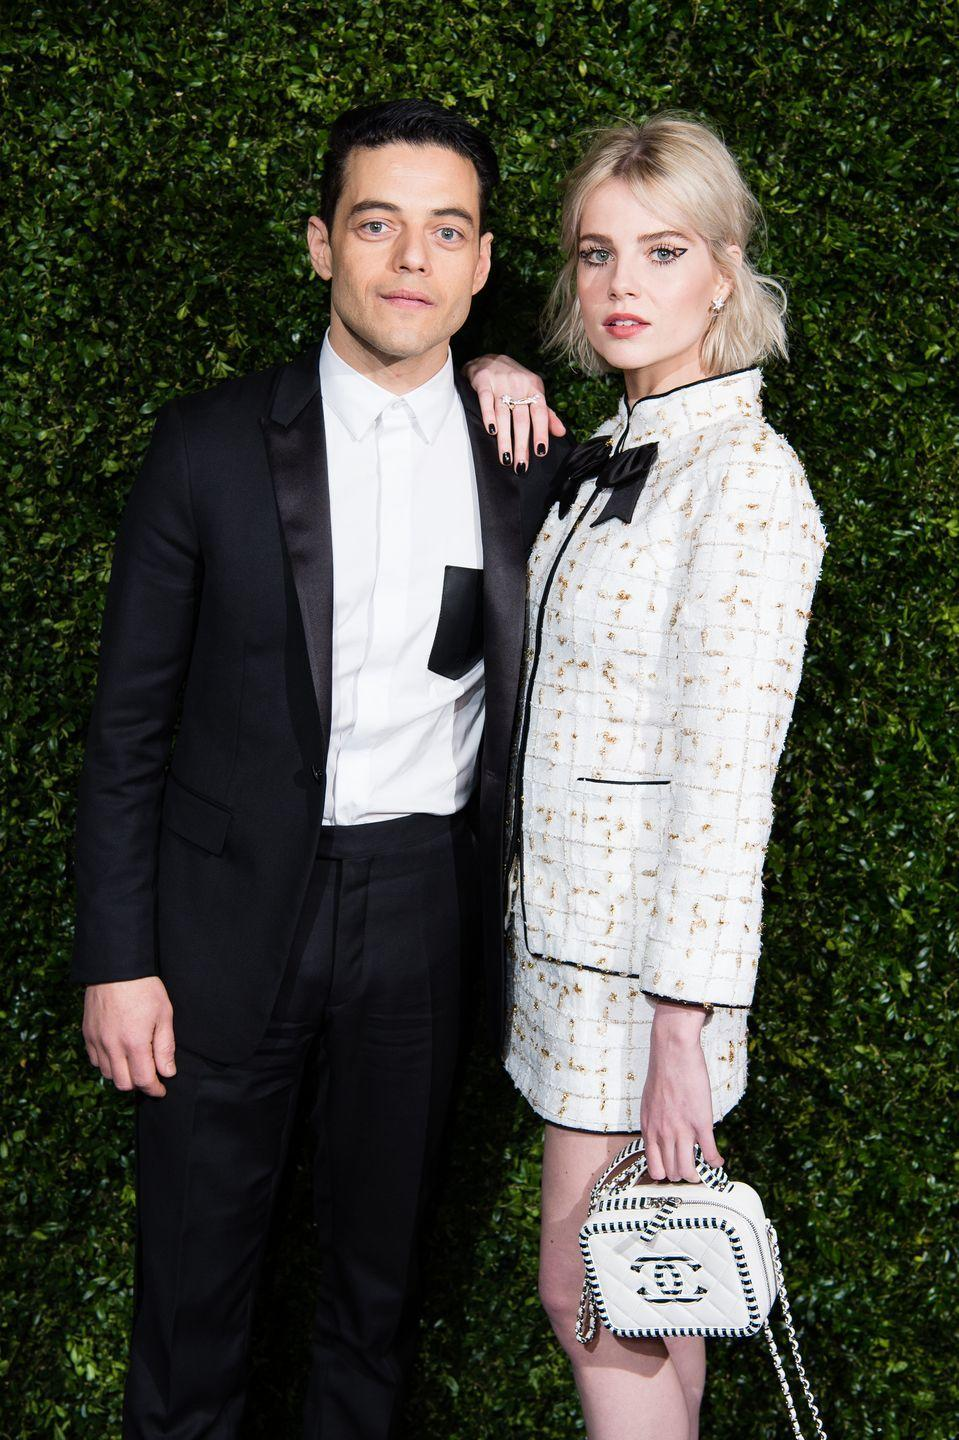 <p><strong>How long they've been together: </strong>The couple met in 2018 on the set of the Oscar-winning biopic, <em>Bohemian Rhapsody, </em>where they were in an on-screen relationship. </p><p><strong>Why you forgot they're <strong>together</strong>: </strong>Although the couple shined throughout 2019's awards season, things seem to have settled for Malek and Boynton. They've since traded red carpet photo ops for casual New York City strolls, which seems to be more their speed. </p>